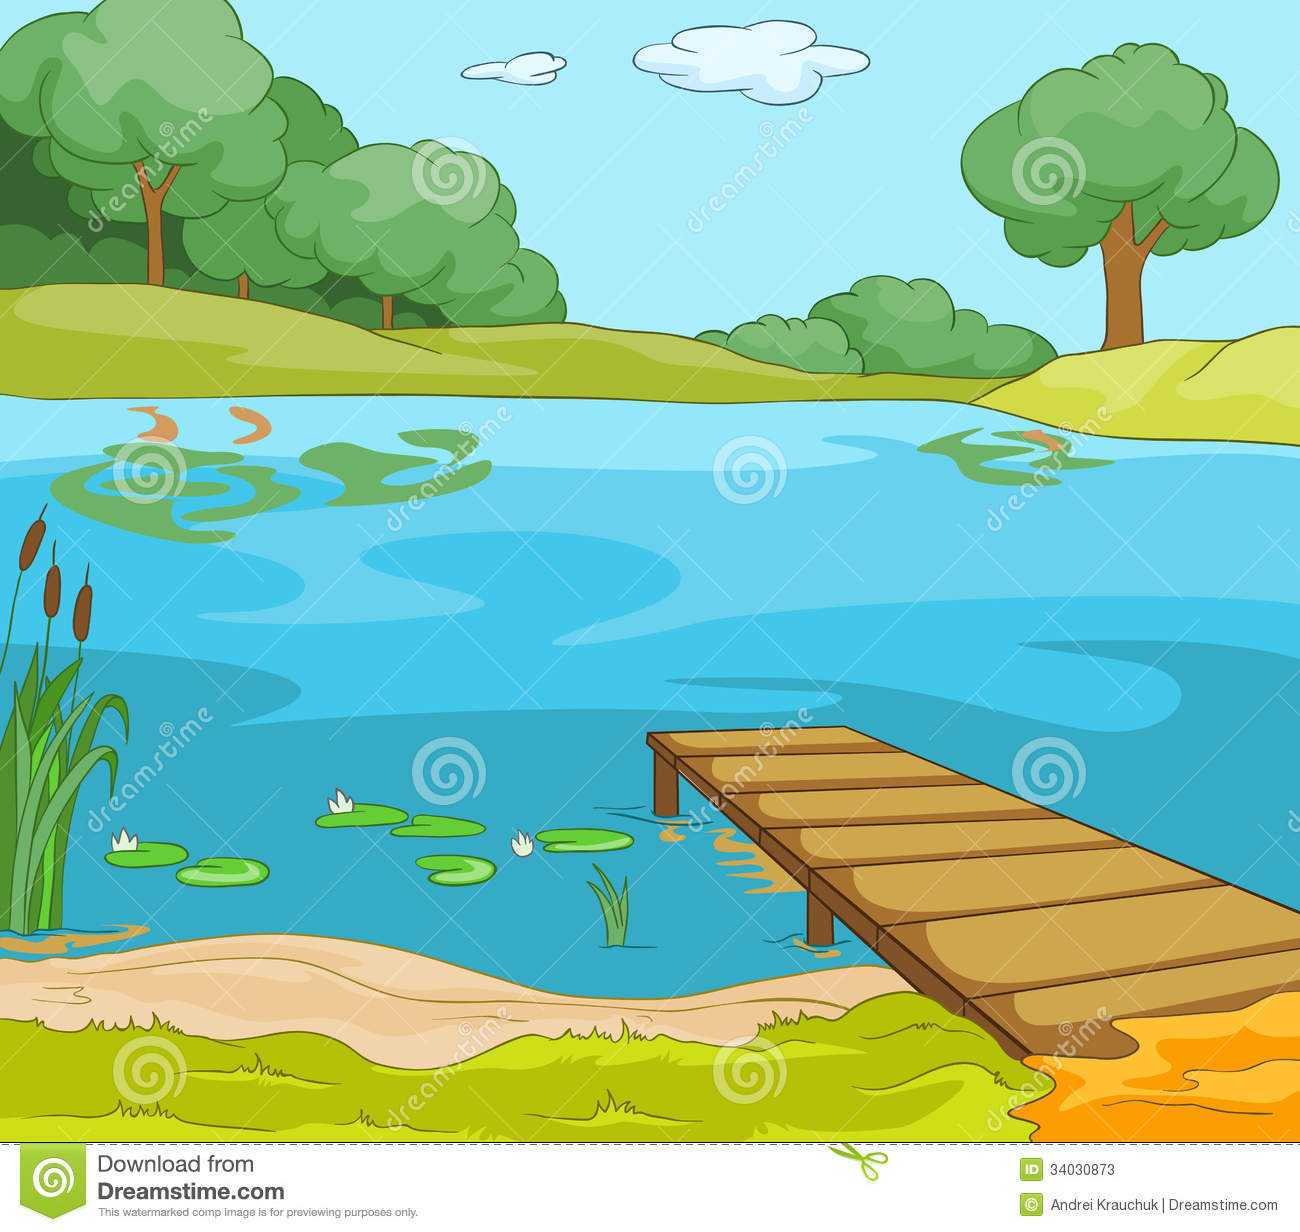 lake clipart - photo #28